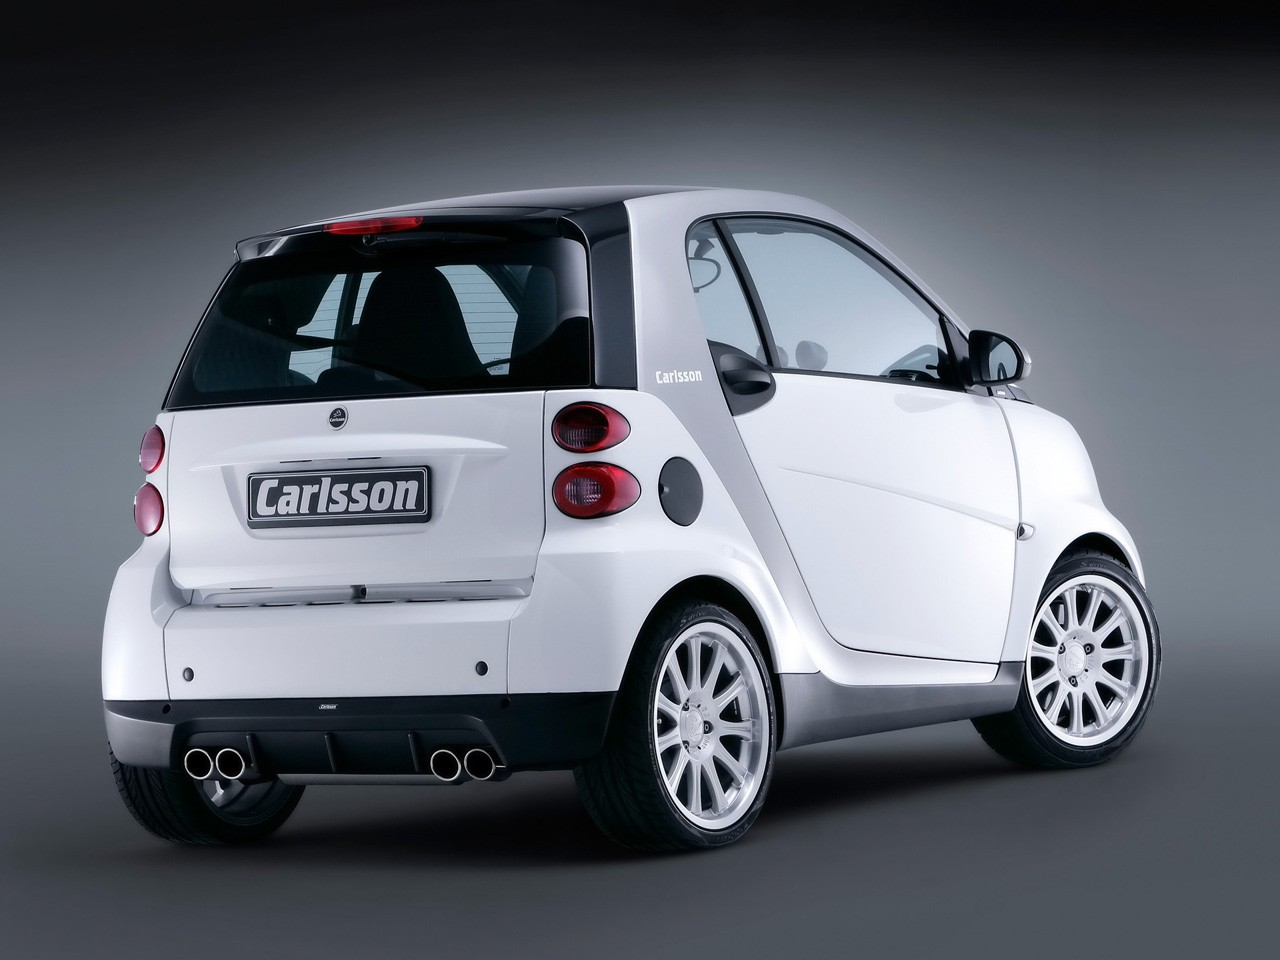 2009 Carlsson Smart Fortwo